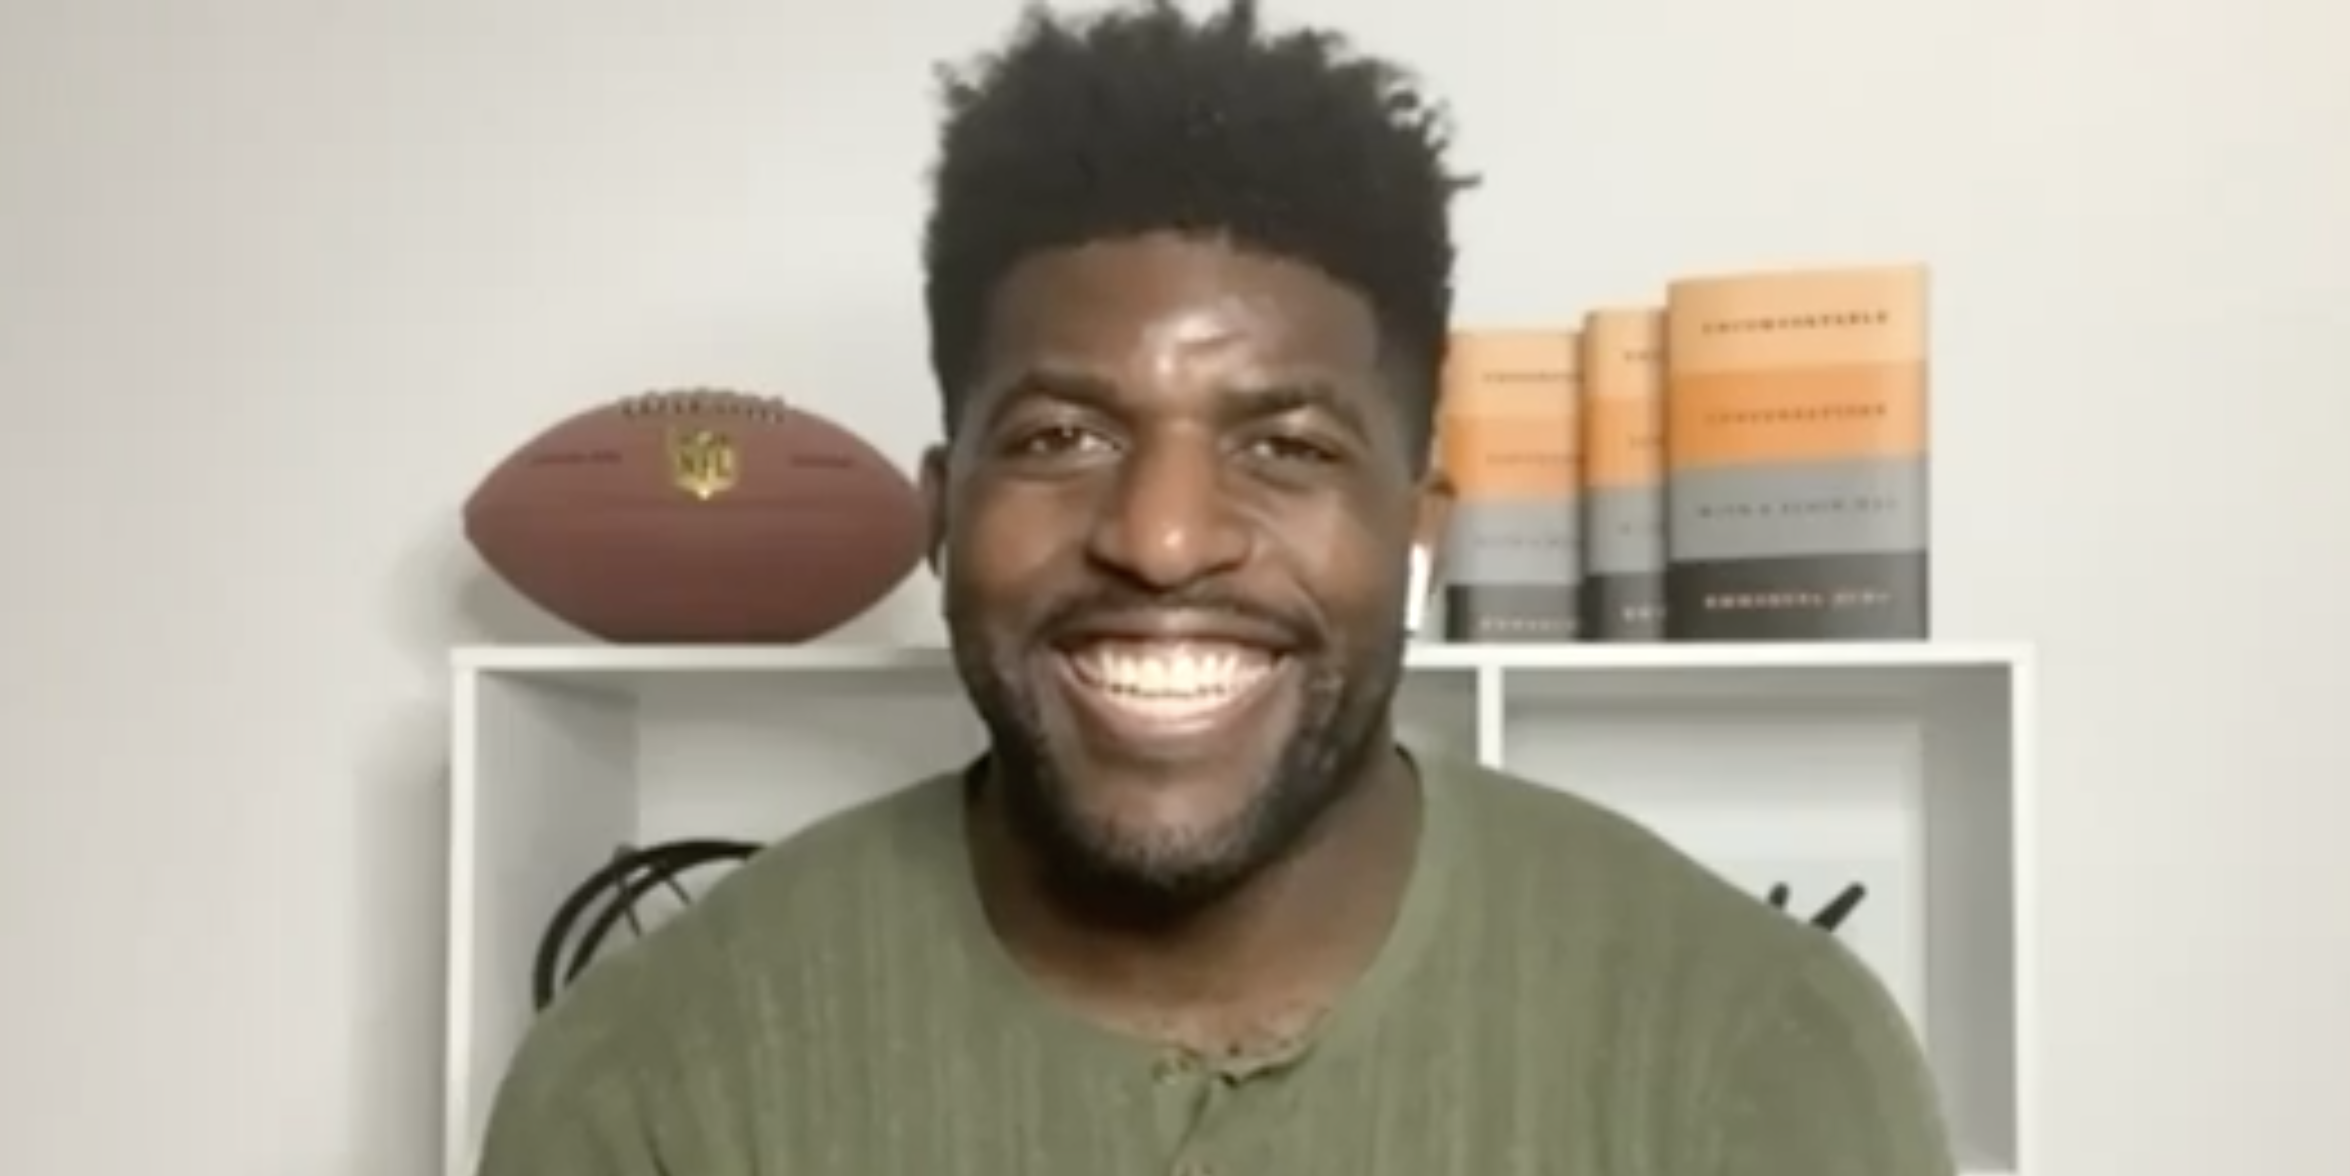 Emmanuel Acho: CP's Uncomfortable Conversation with A Black Man